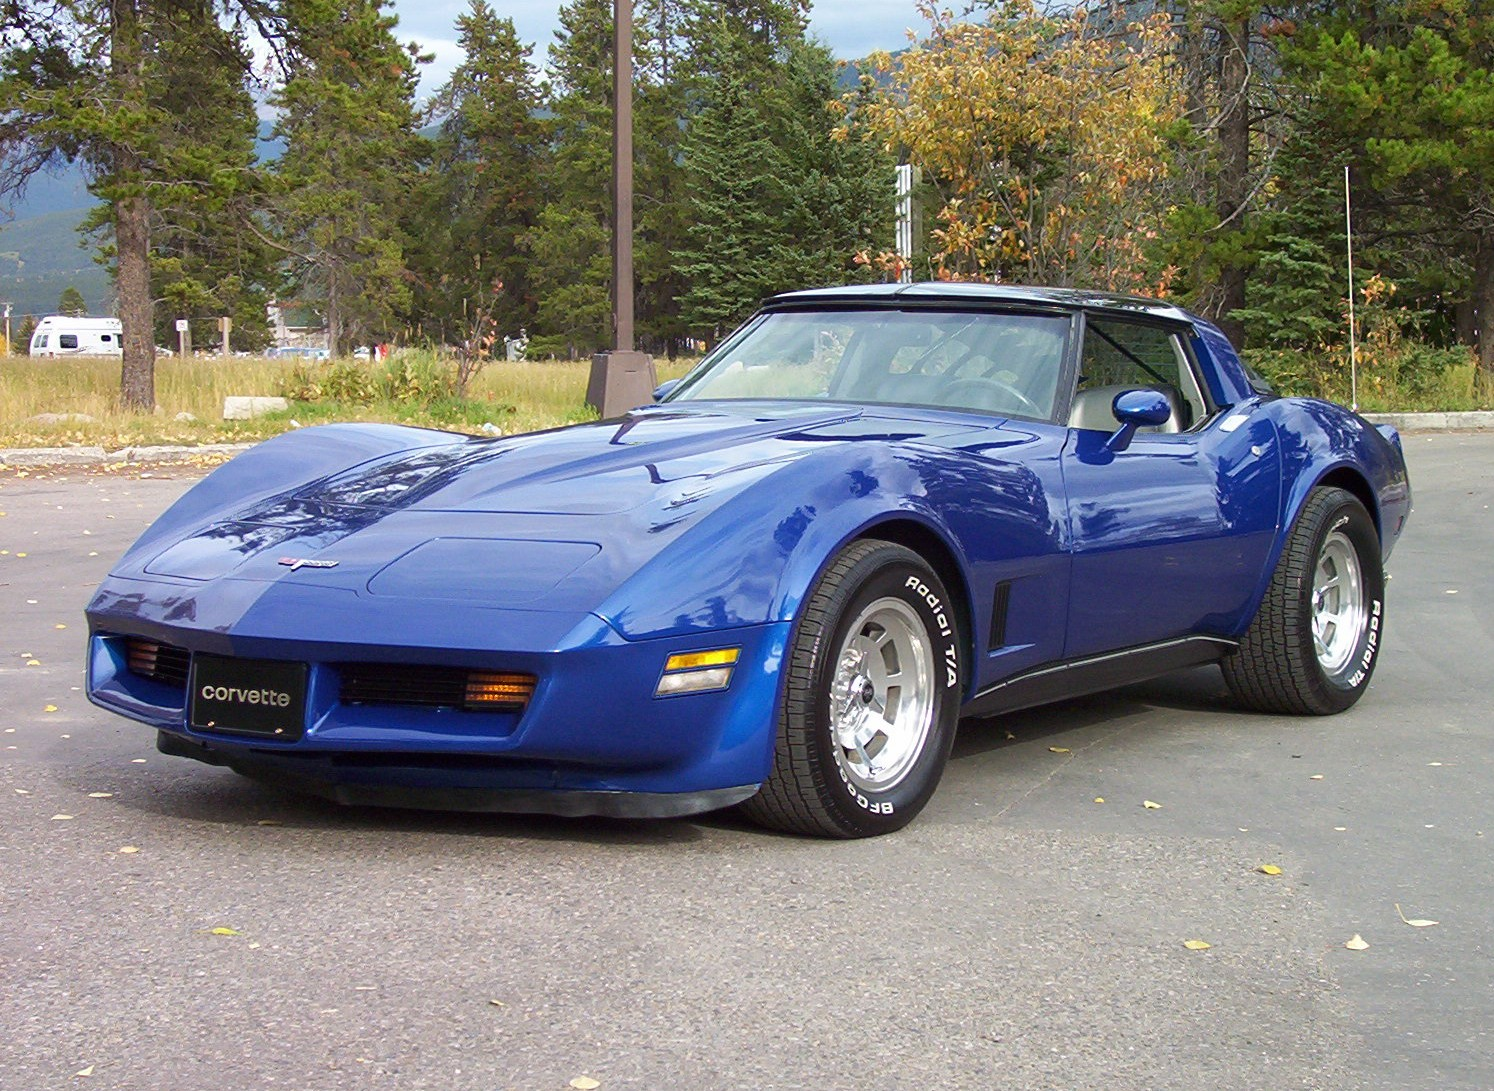 Chevrolet Corvette 1981 Photo - 1